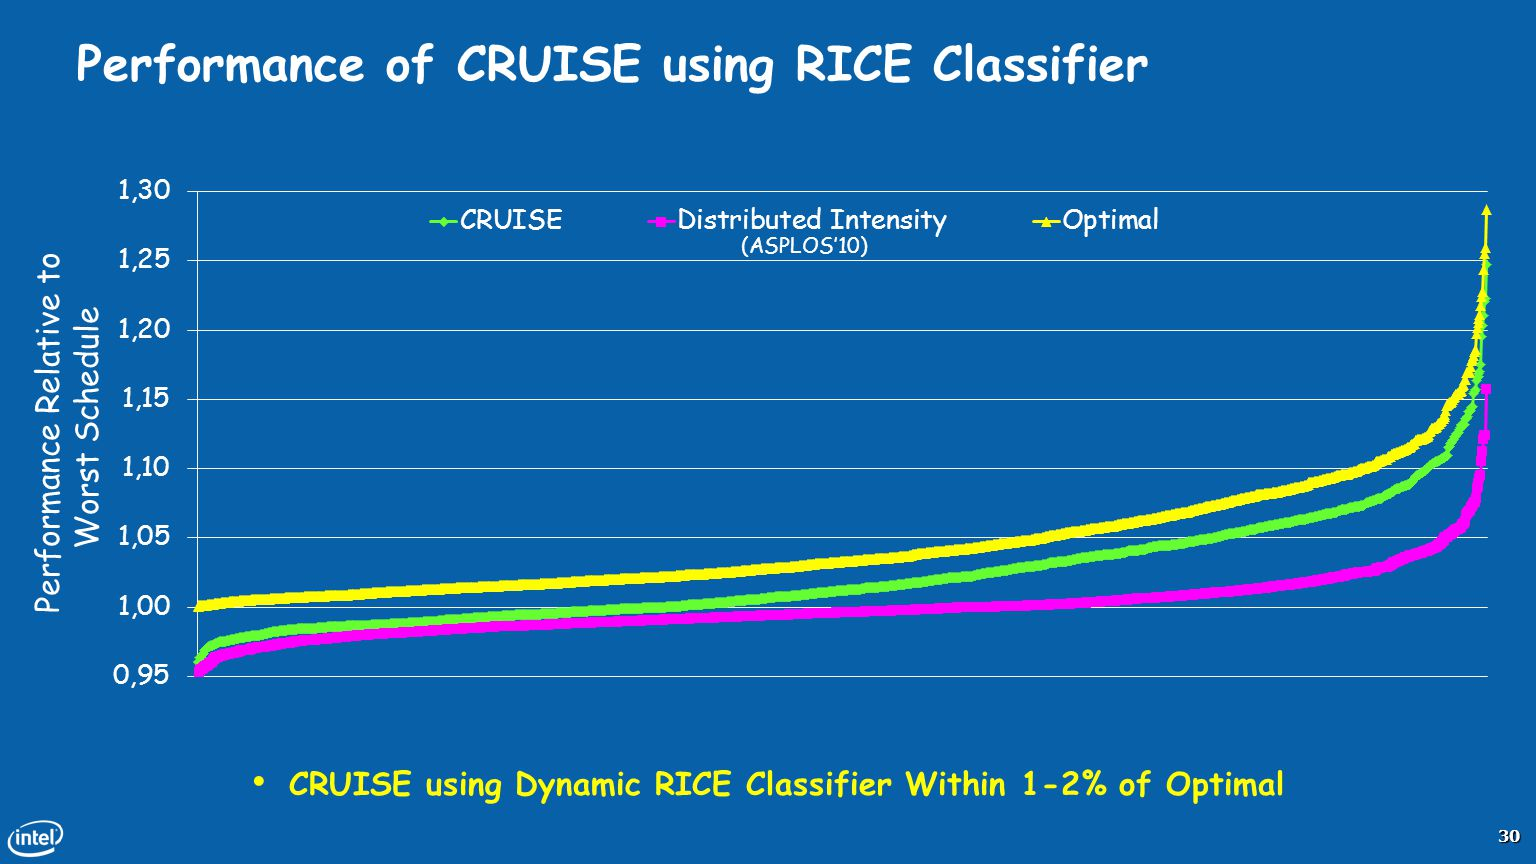 Performance of CRUISE using RICE Classifier